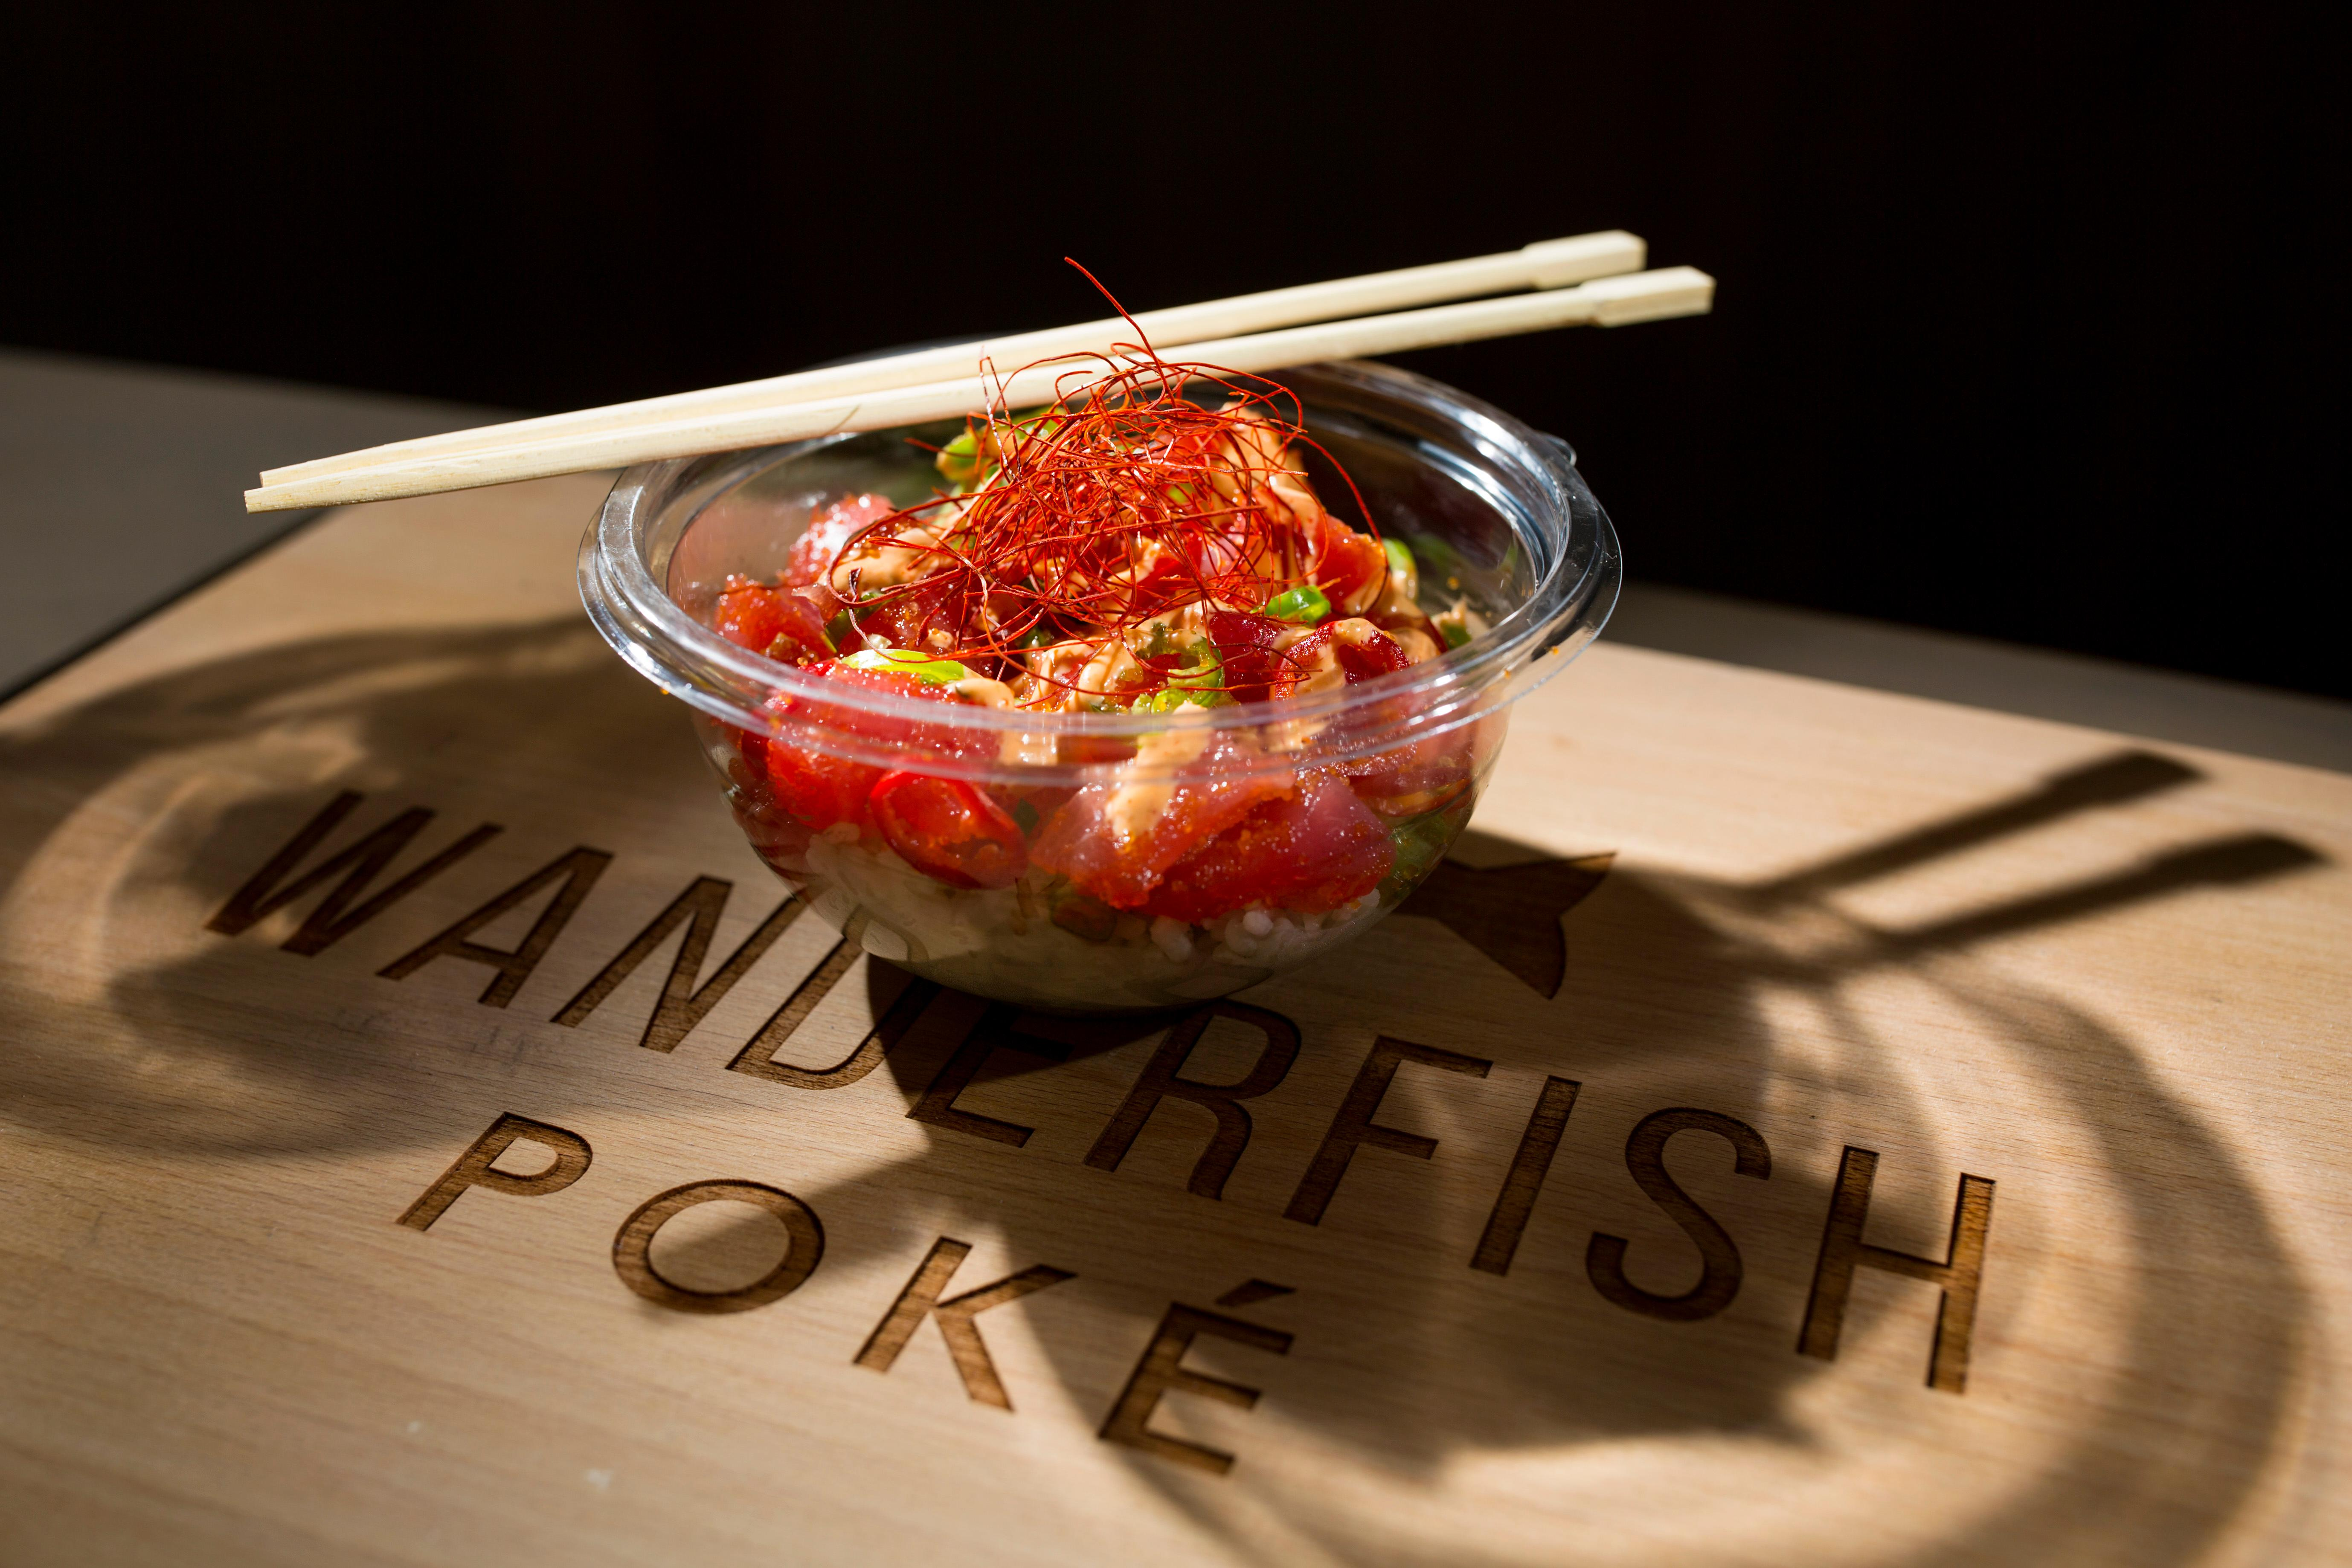 The Blaze Bowl at Wanderfish Poke, with wild Sockeye salmon, spicy aioli, jalapeno, green onions, fresno chili, masago, crisp garlic, and sesame seeds. All bowls at Wanderfish are customizable, with your choice of protein. (Sy Bean / Seattle Refined)